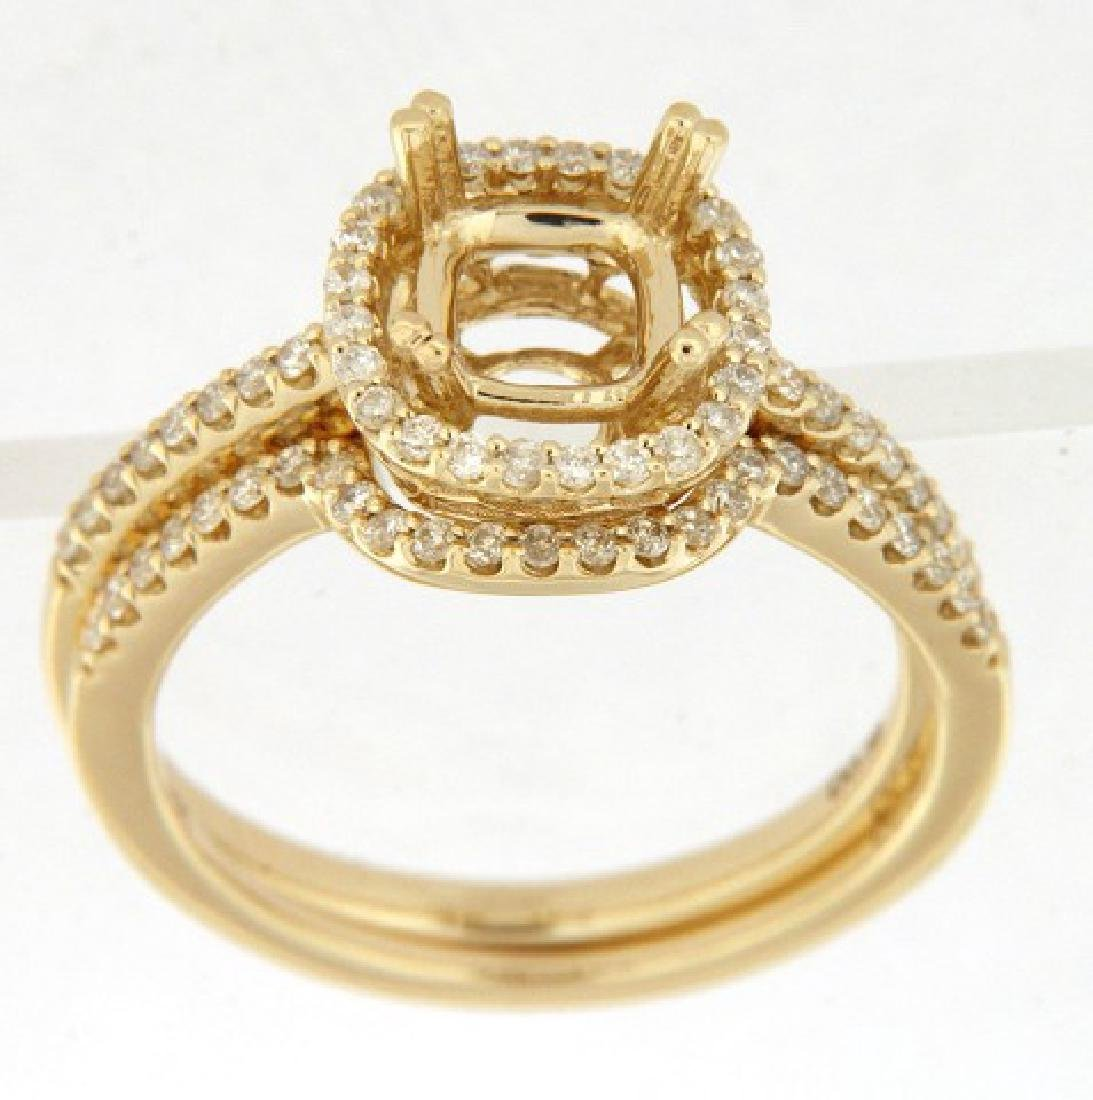 14KT Yellow Gold Ladies Diamond Ring